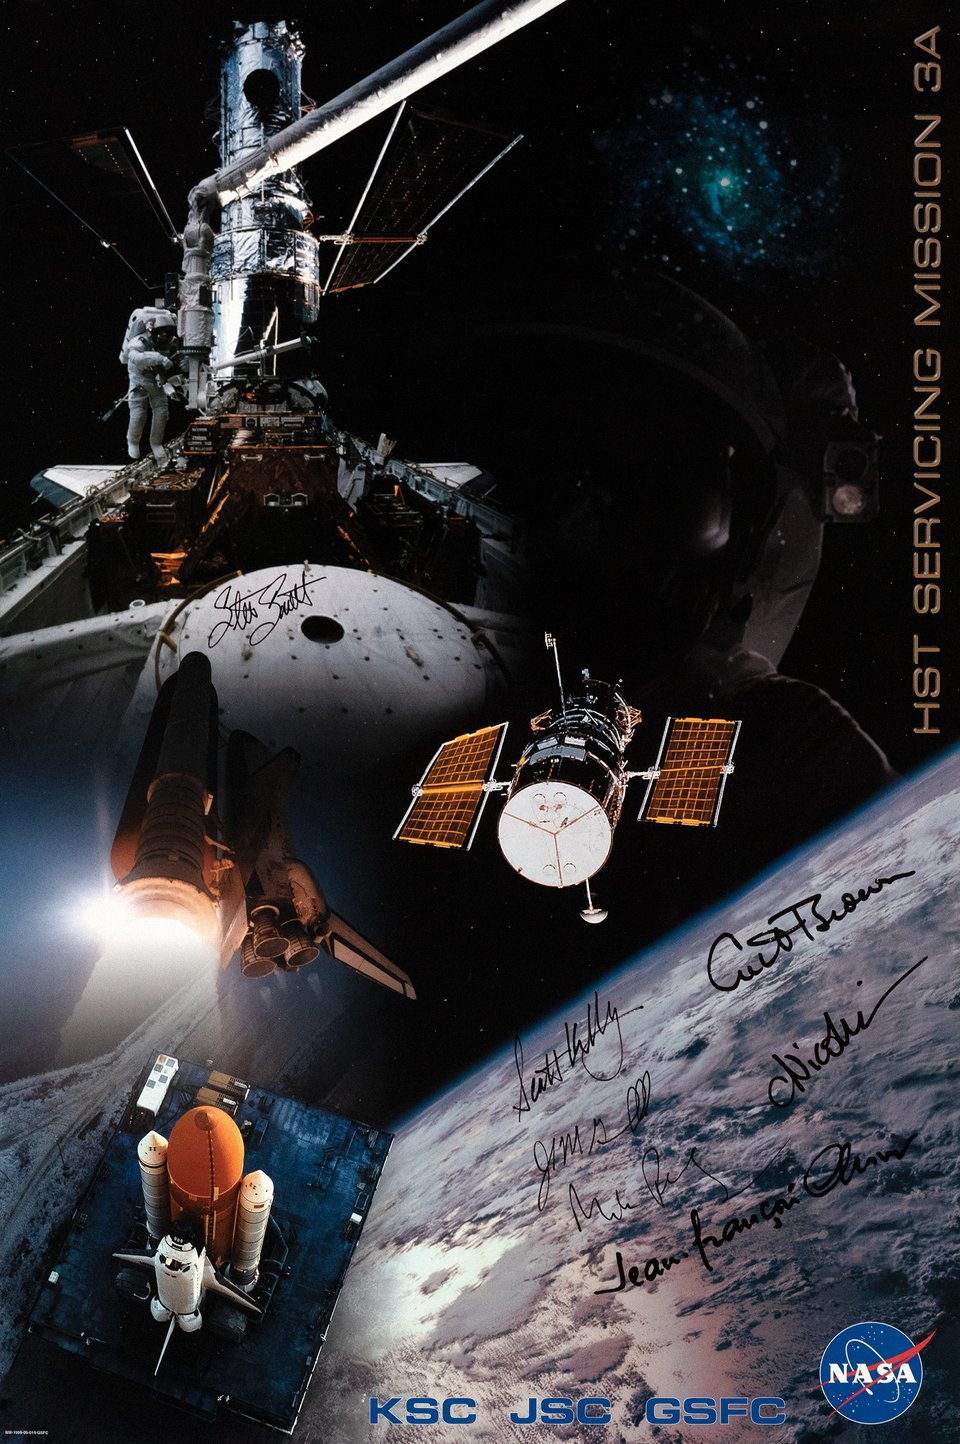 Hubble, HST Serving Mission 3A – Vintage poster – NASA – 1999